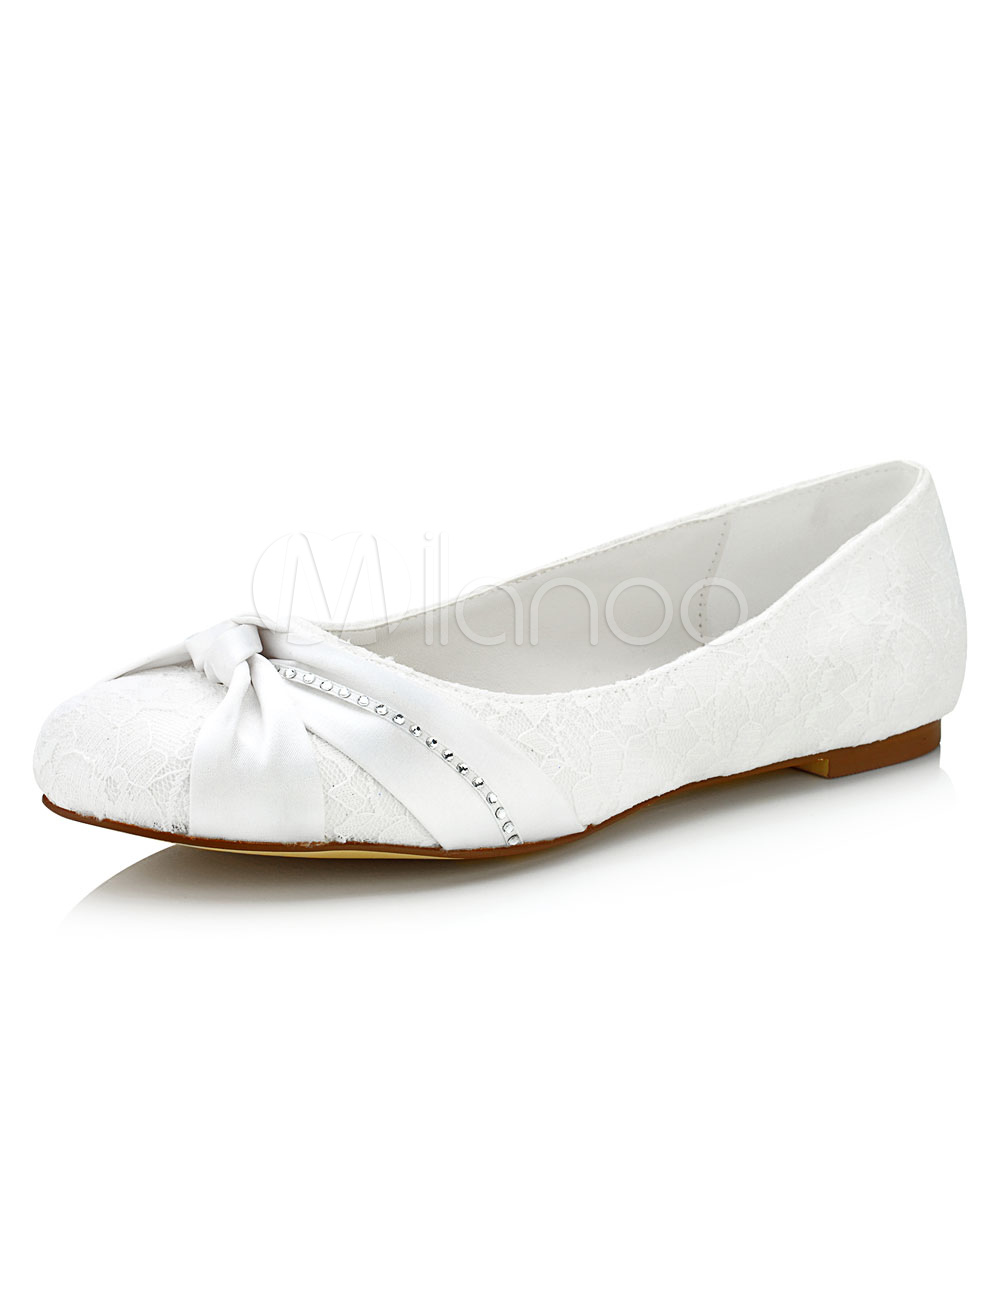 Lace Wedding Shoes Flat Knotted Round Toe Slip-on Bridal Shoes